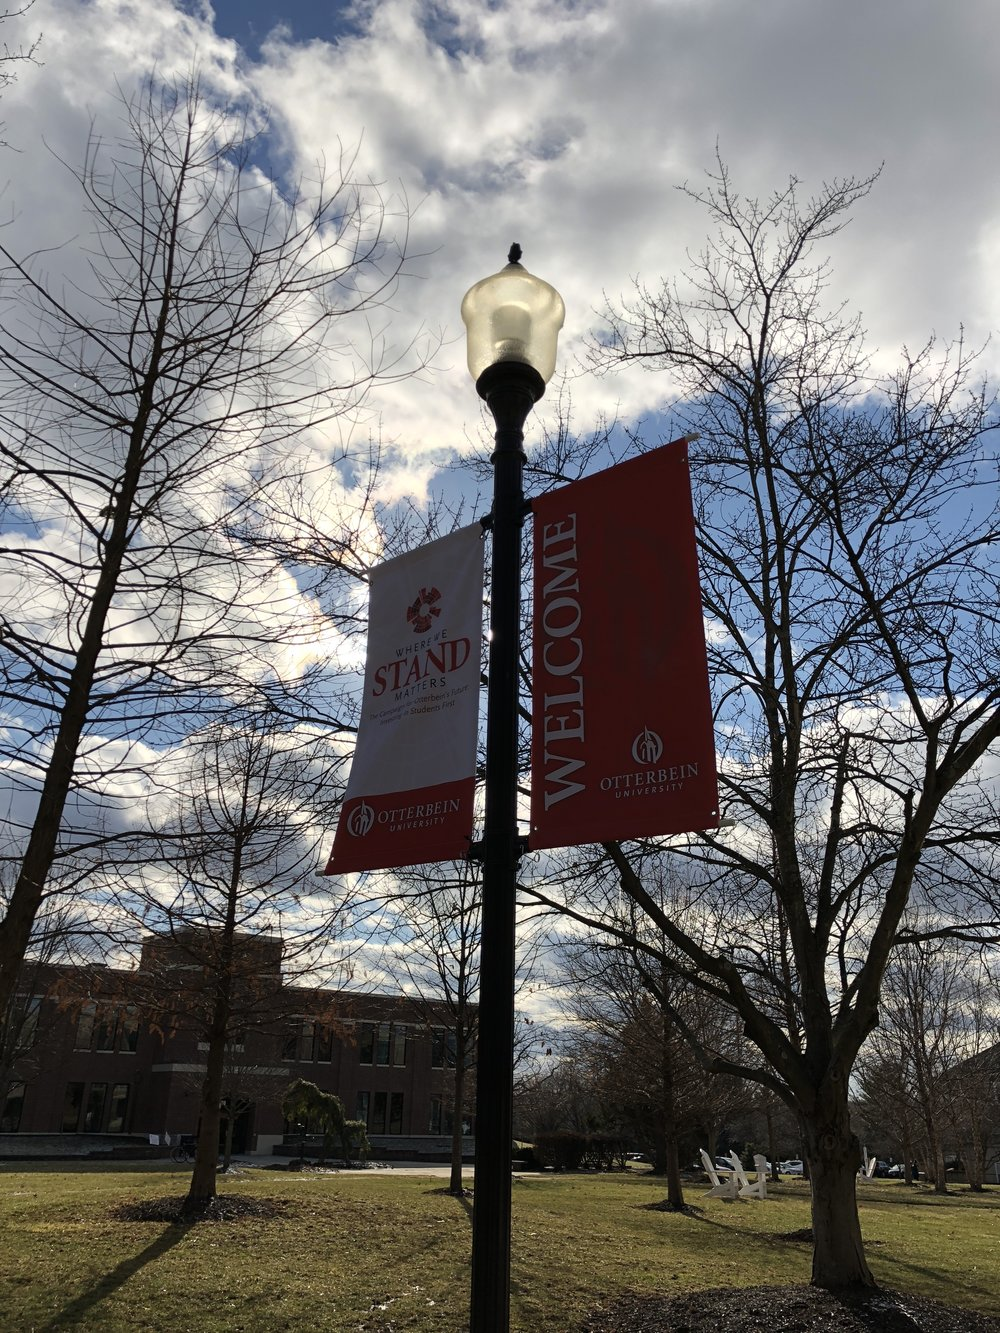 The Otterbein Office of Marketing and Communication maintains the brand image of the university, assisting in collateral design, content production and crisis communication